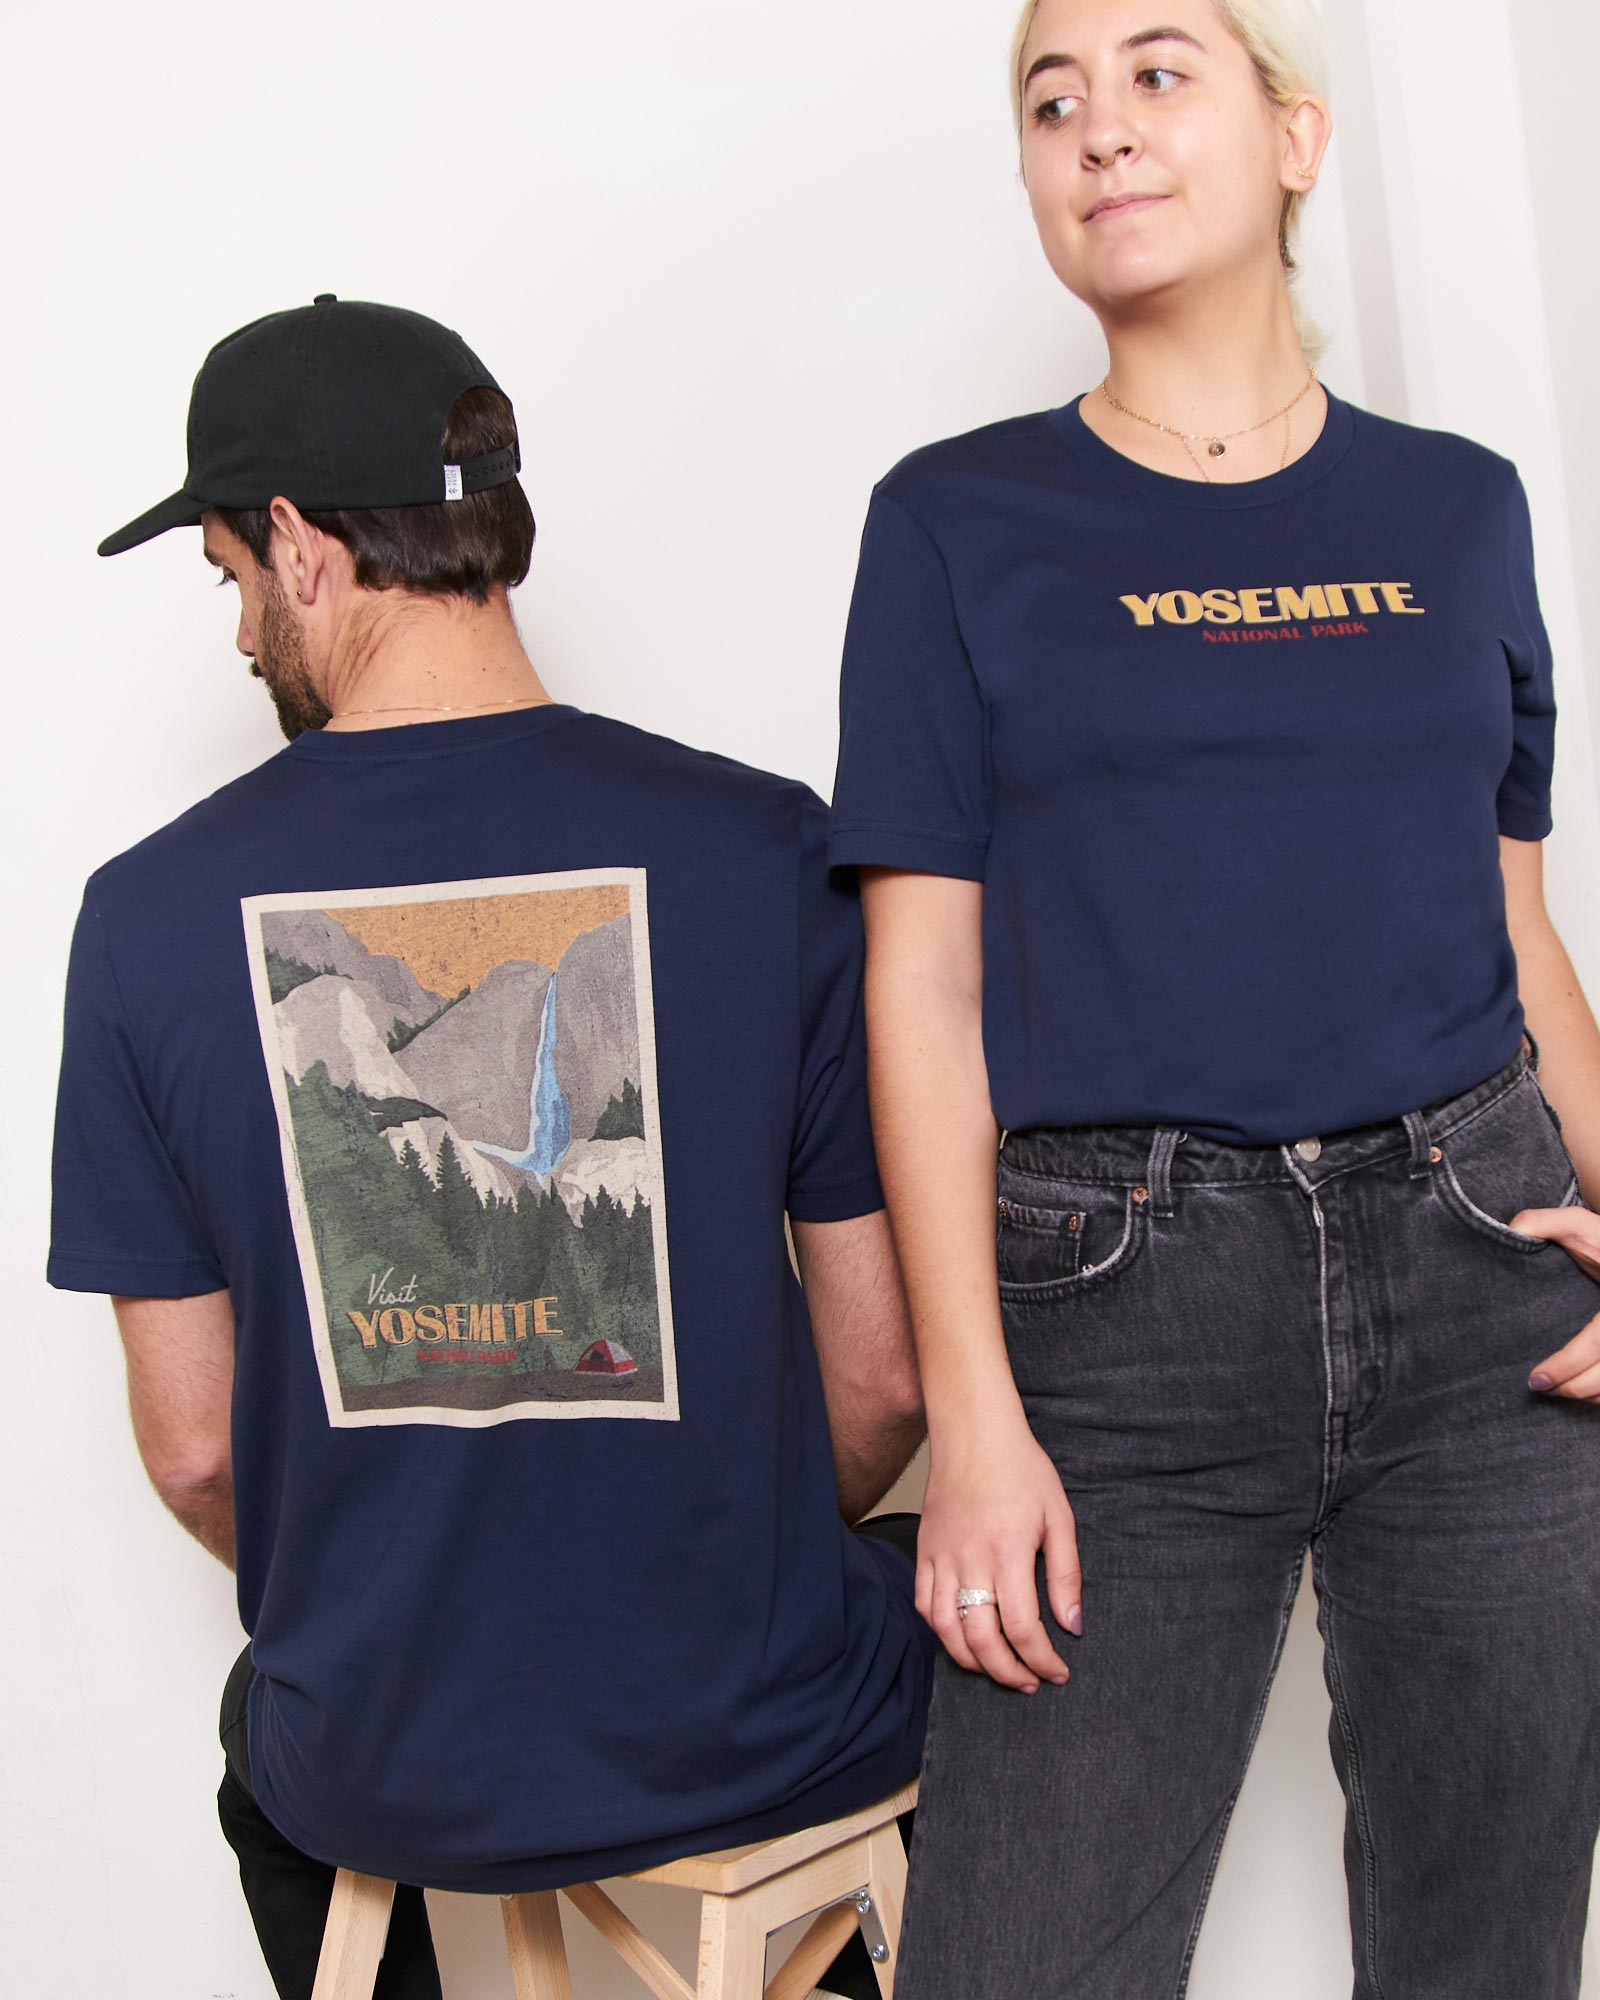 Yosemite Visit Tee | Parks Project | National Park Tee